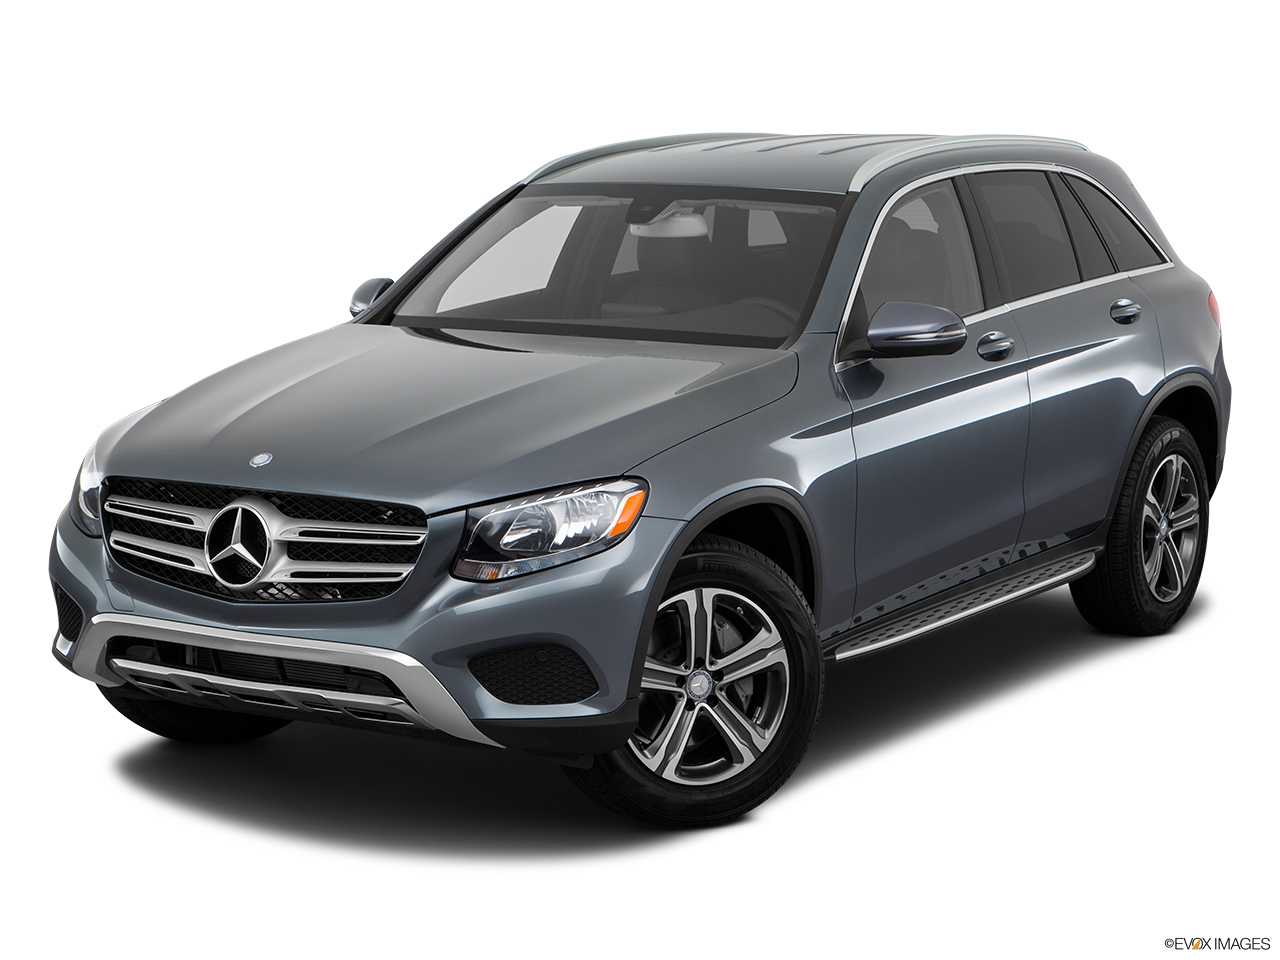 Mercedes benz glc class price in uae new mercedes benz for Price of a new mercedes benz